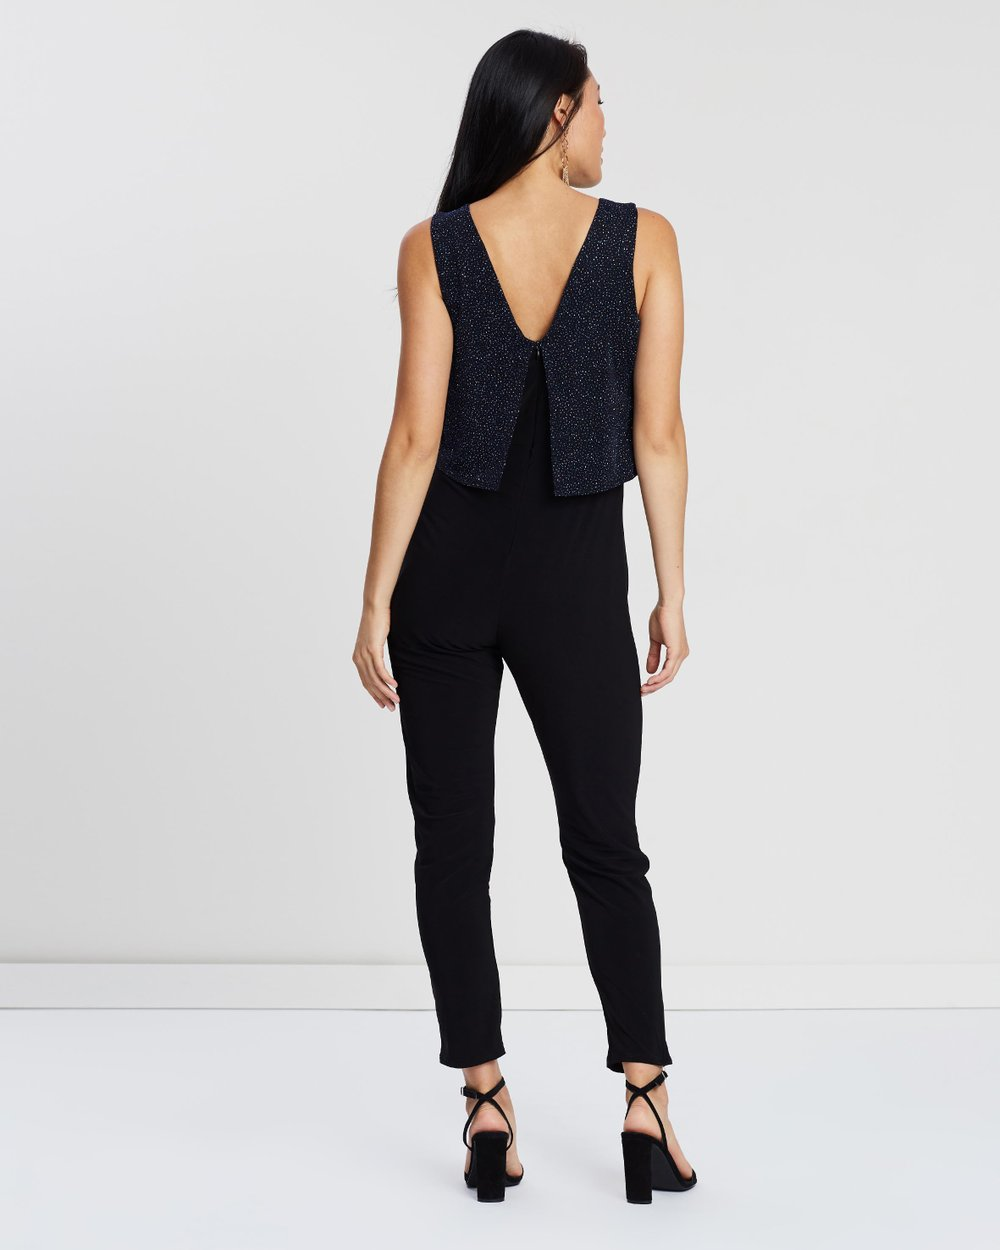 cc0e4ff5acde Lurex Double Layer Jumpsuit by Dorothy Perkins Online